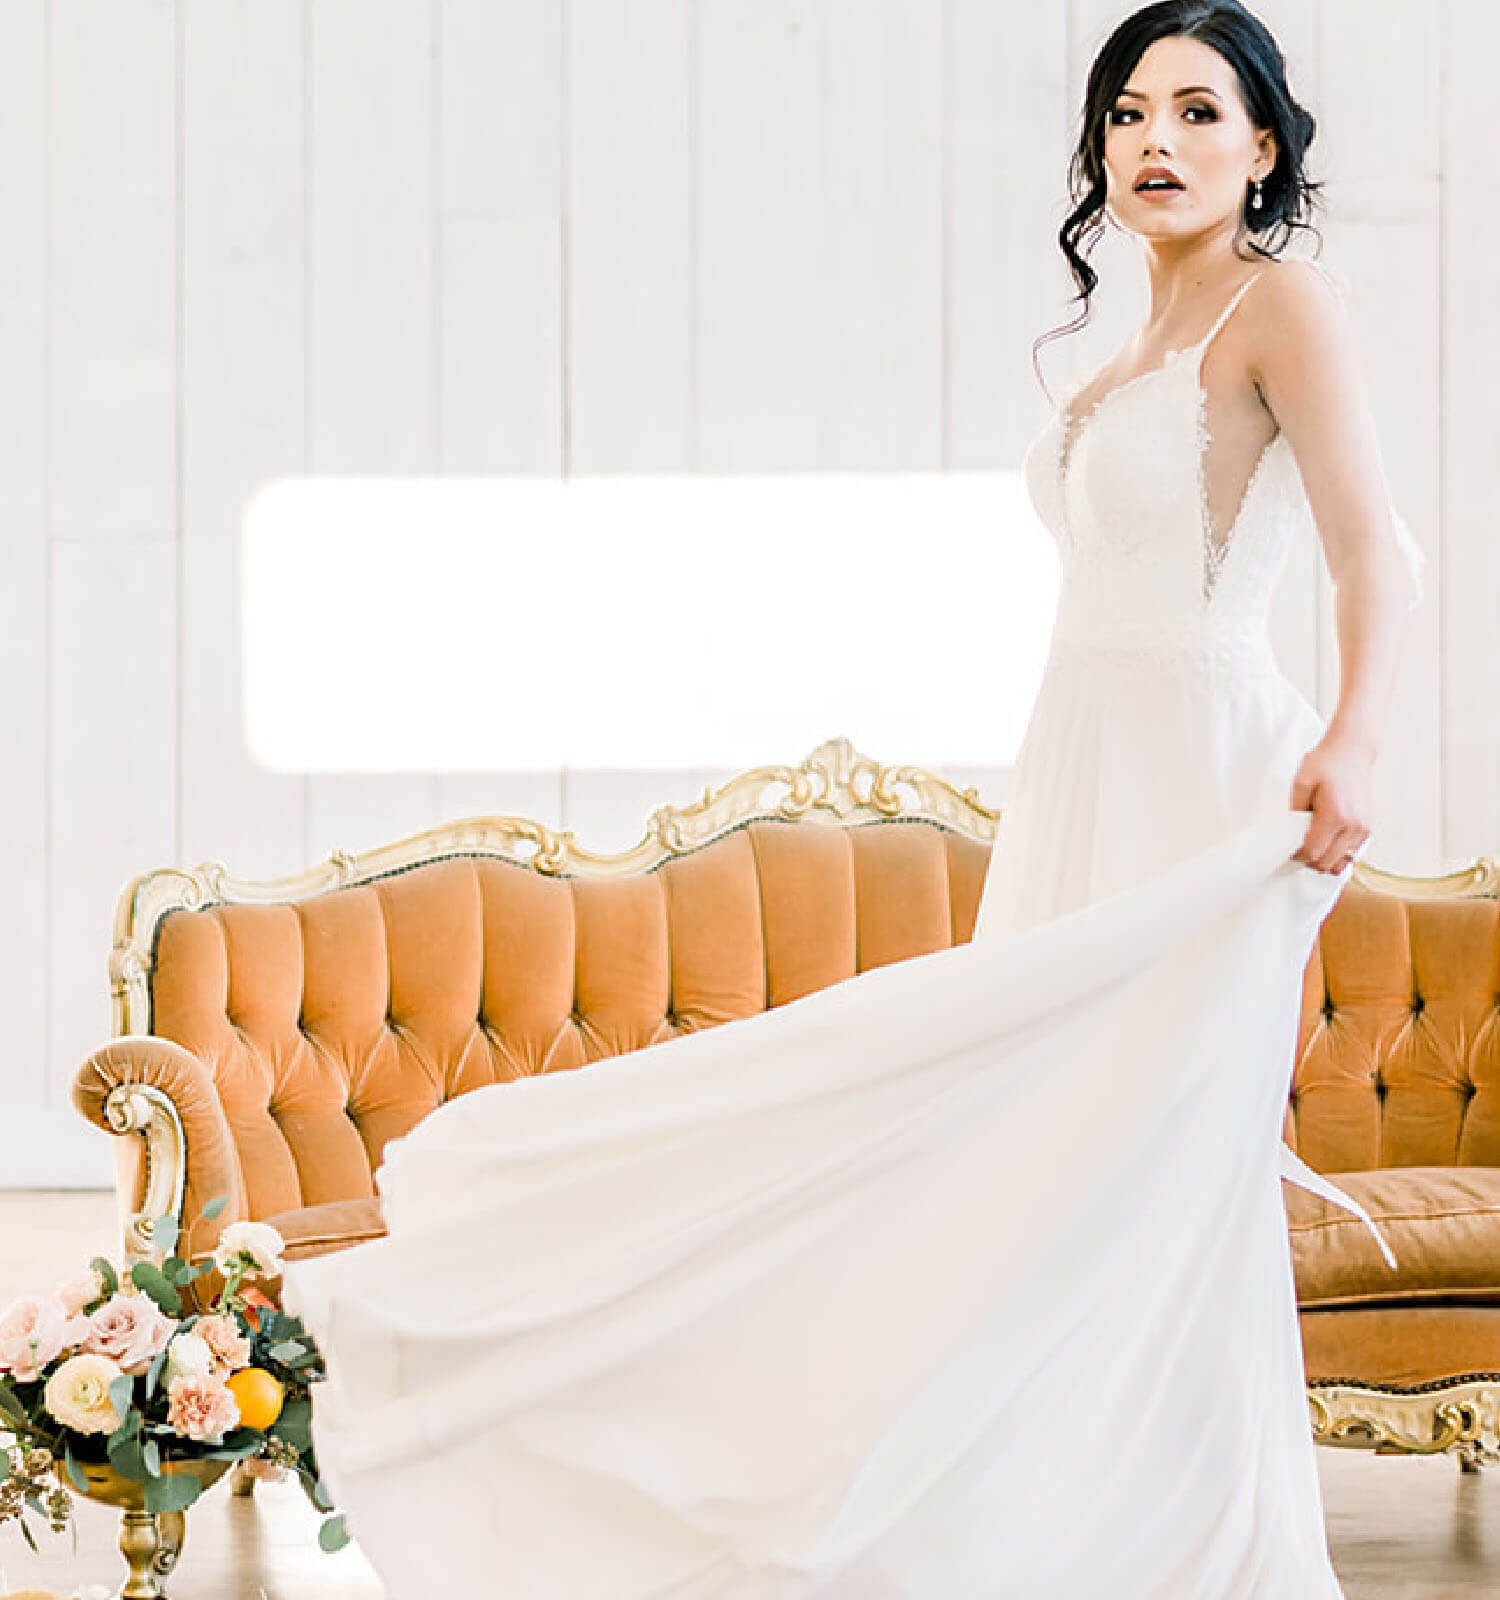 Model wearing a white bridal gown